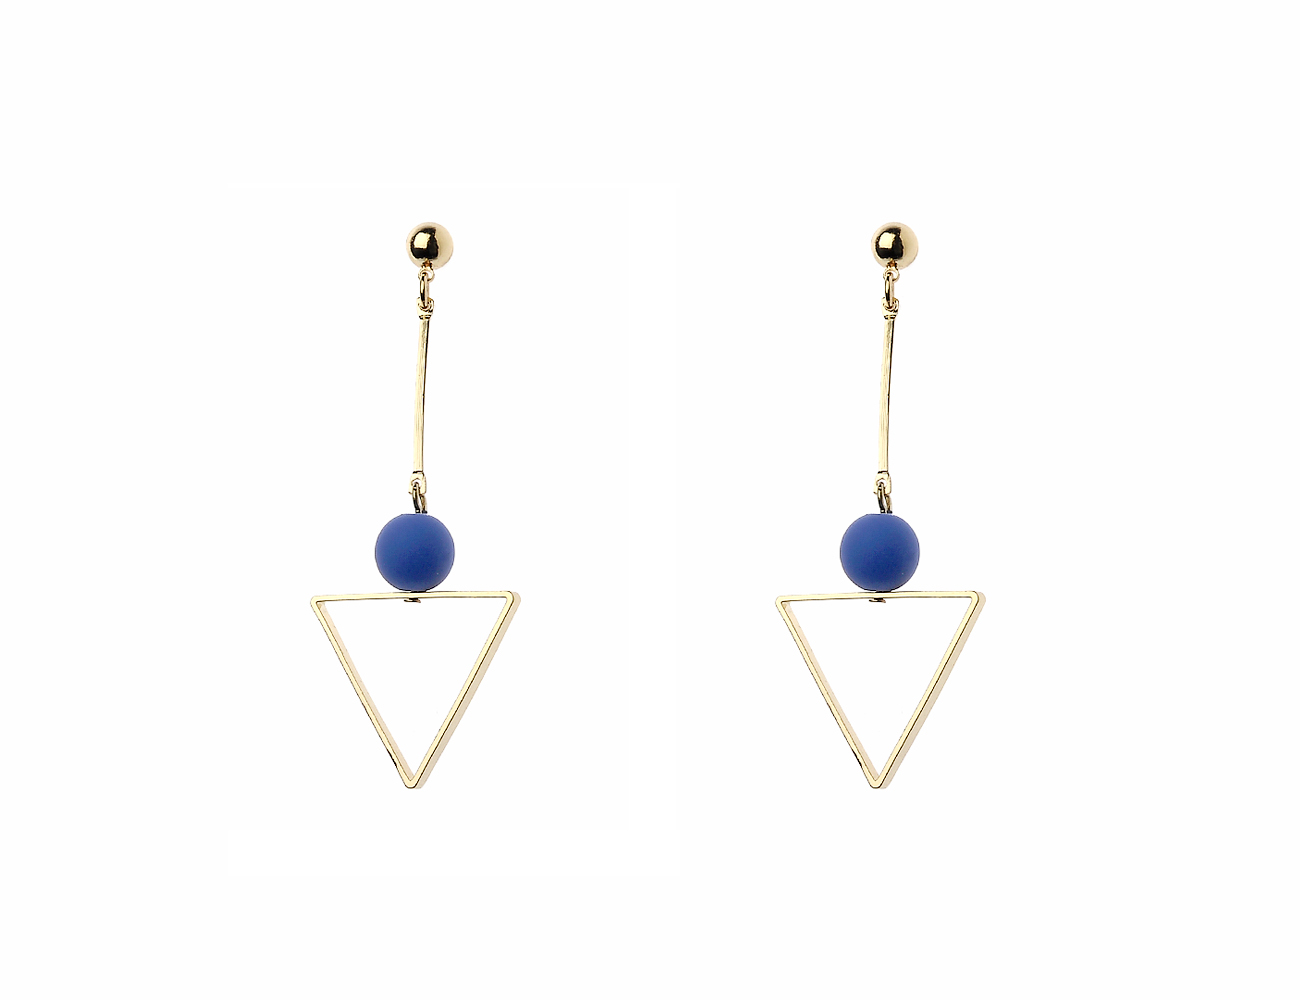 Gold Stick Earrings With Drop Triangle And Blue Bead